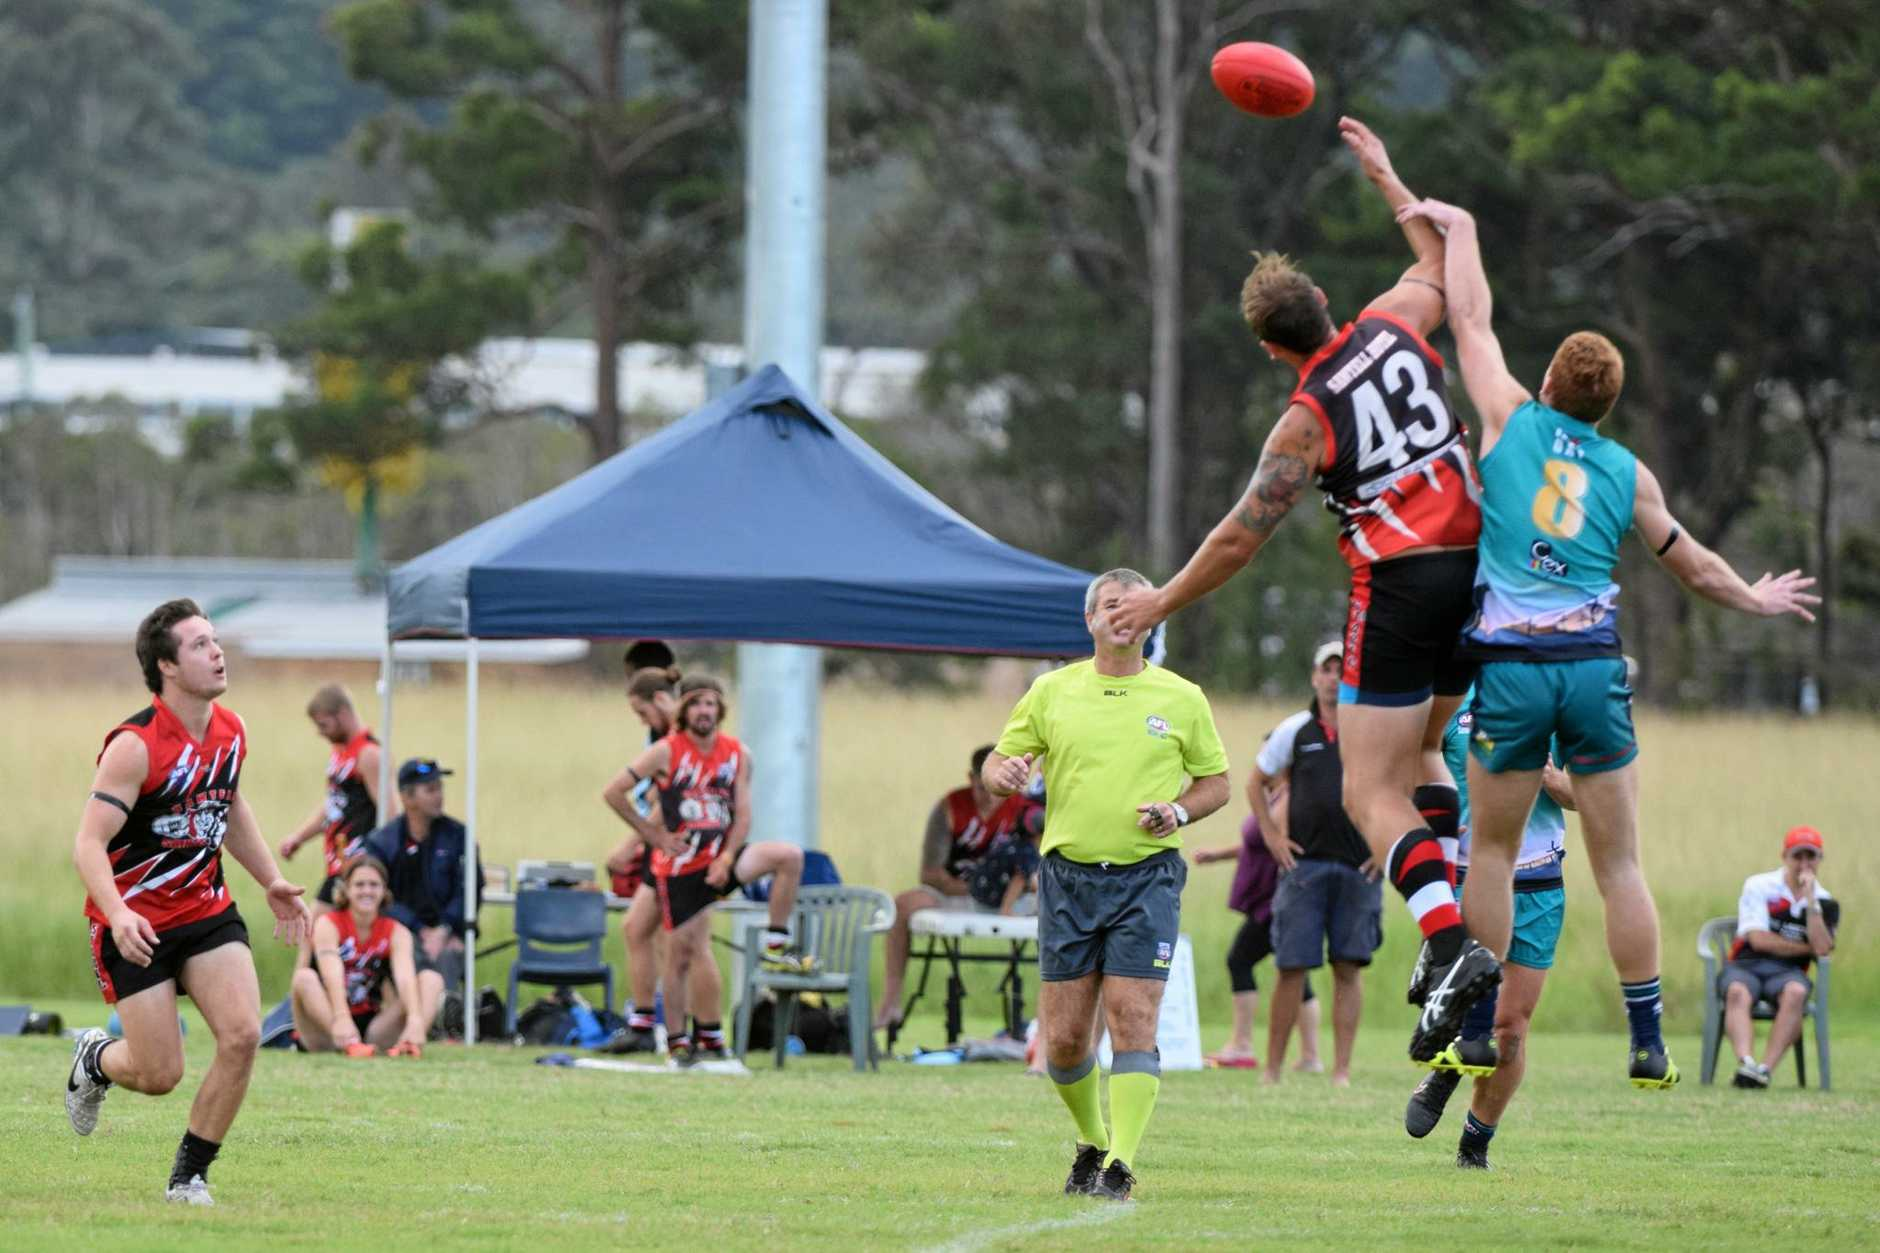 Hamish Bird from the Sawtell/Toormina Saints is about to run on to a hitout from teammate Bradley Collon against the Coffs Breakers. AFL North Coast 22 April 2017 Coffs Coast Sport and Leisure Park Photo: Brad Greenshields/Coffs Coast Advocate